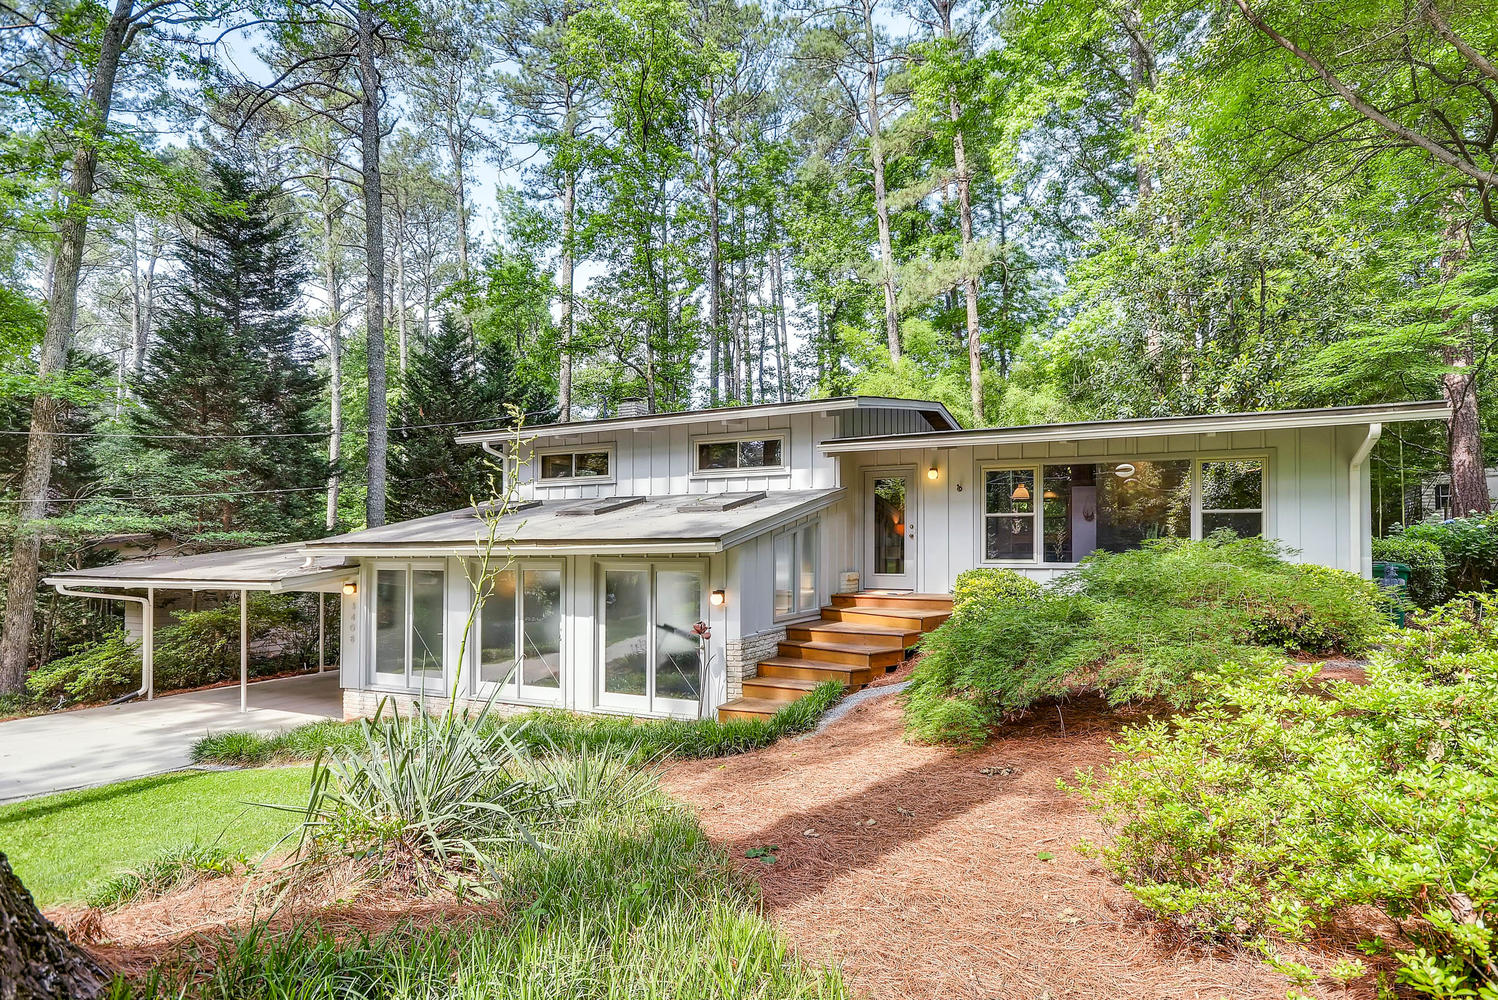 Atlanta mid century modern homes for sale archives for Building a mid century modern home